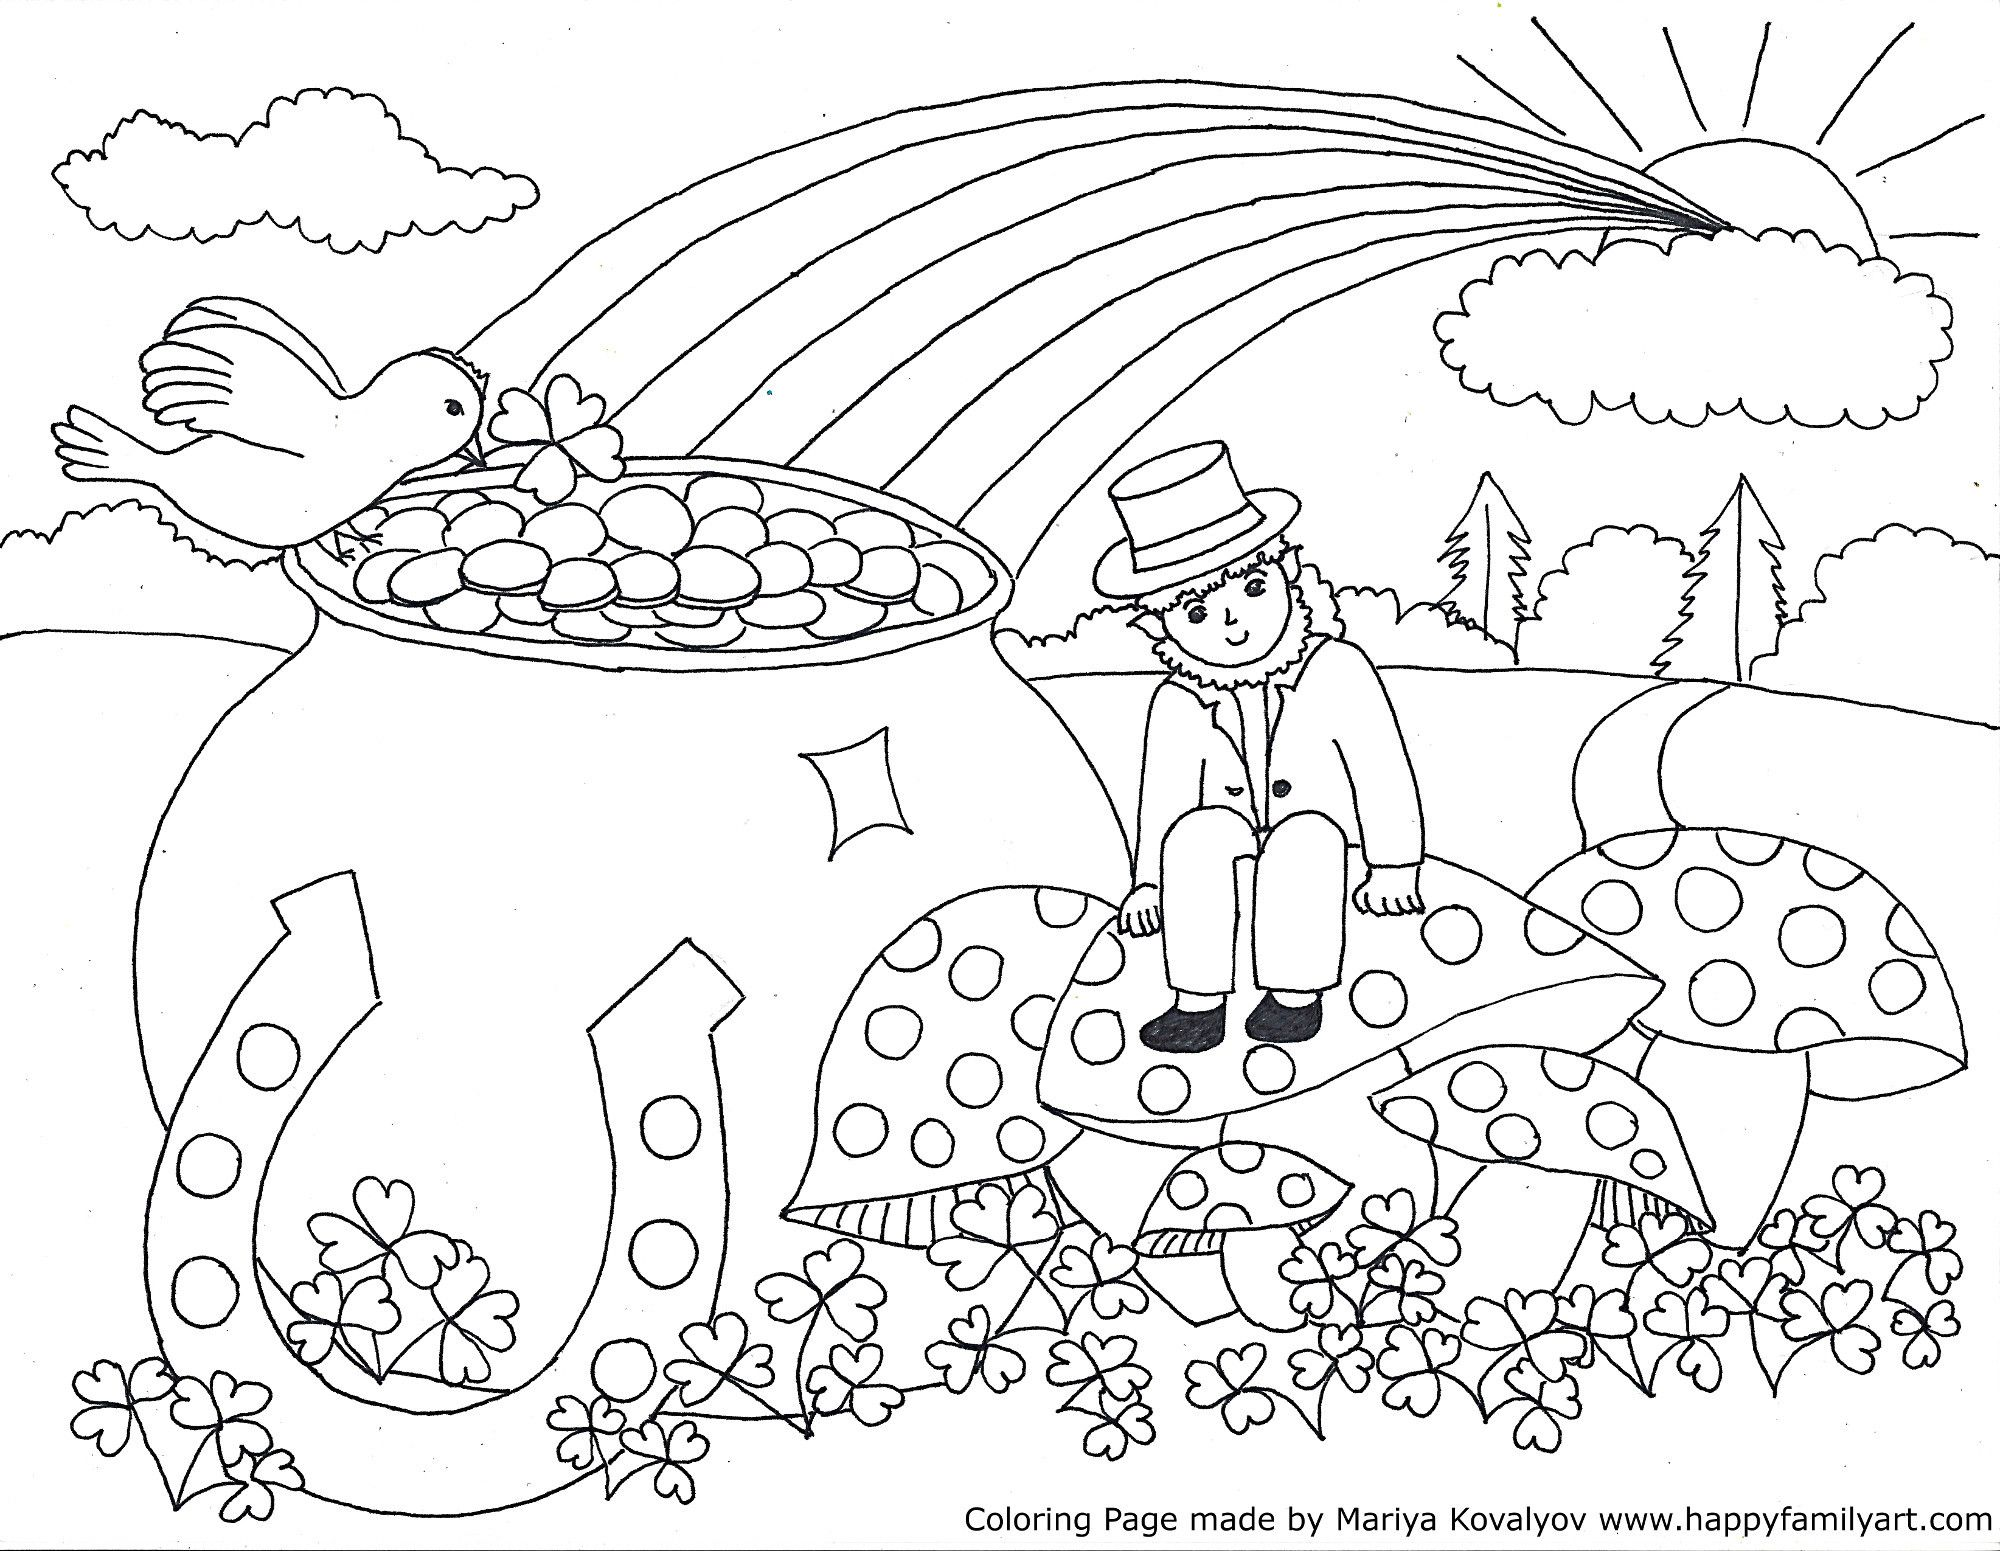 Stpatriksmedium Happy Family Art St Patricks Coloring Sheets Cool Coloring Pages Coloring Pages